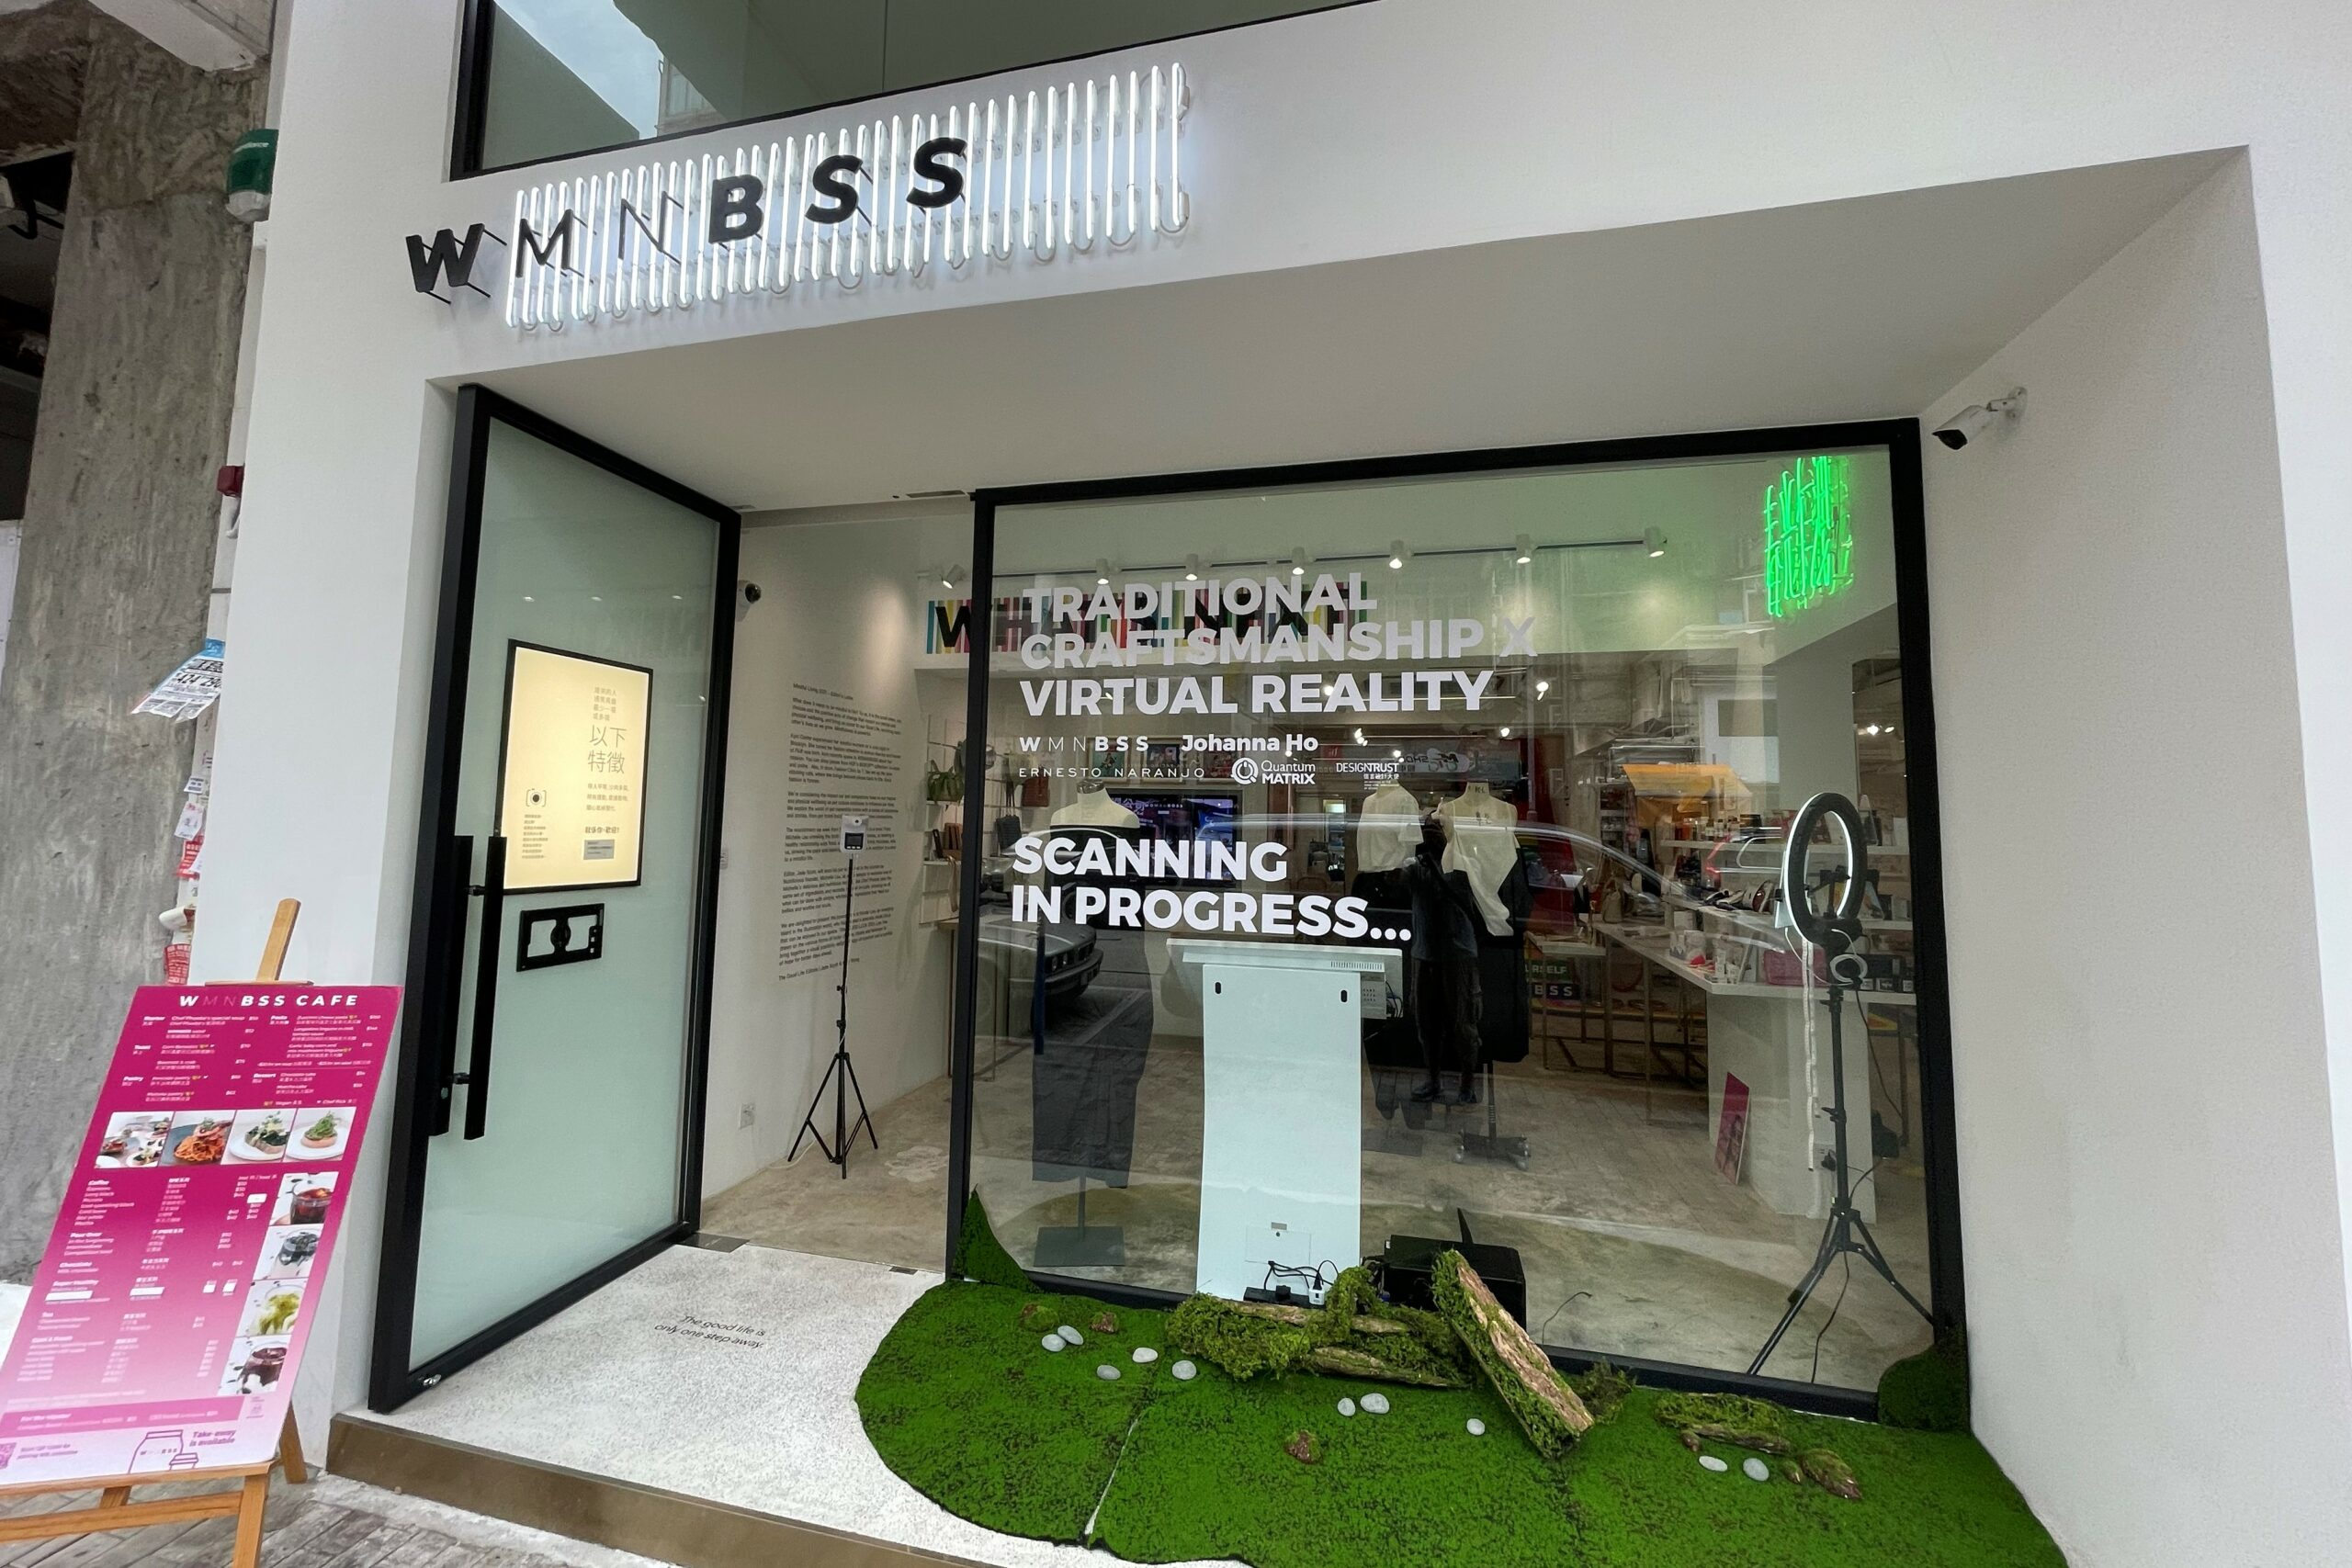 One-stop shopping experience in sustainable fashion, from fitting to manufacturing @WSNXT 2